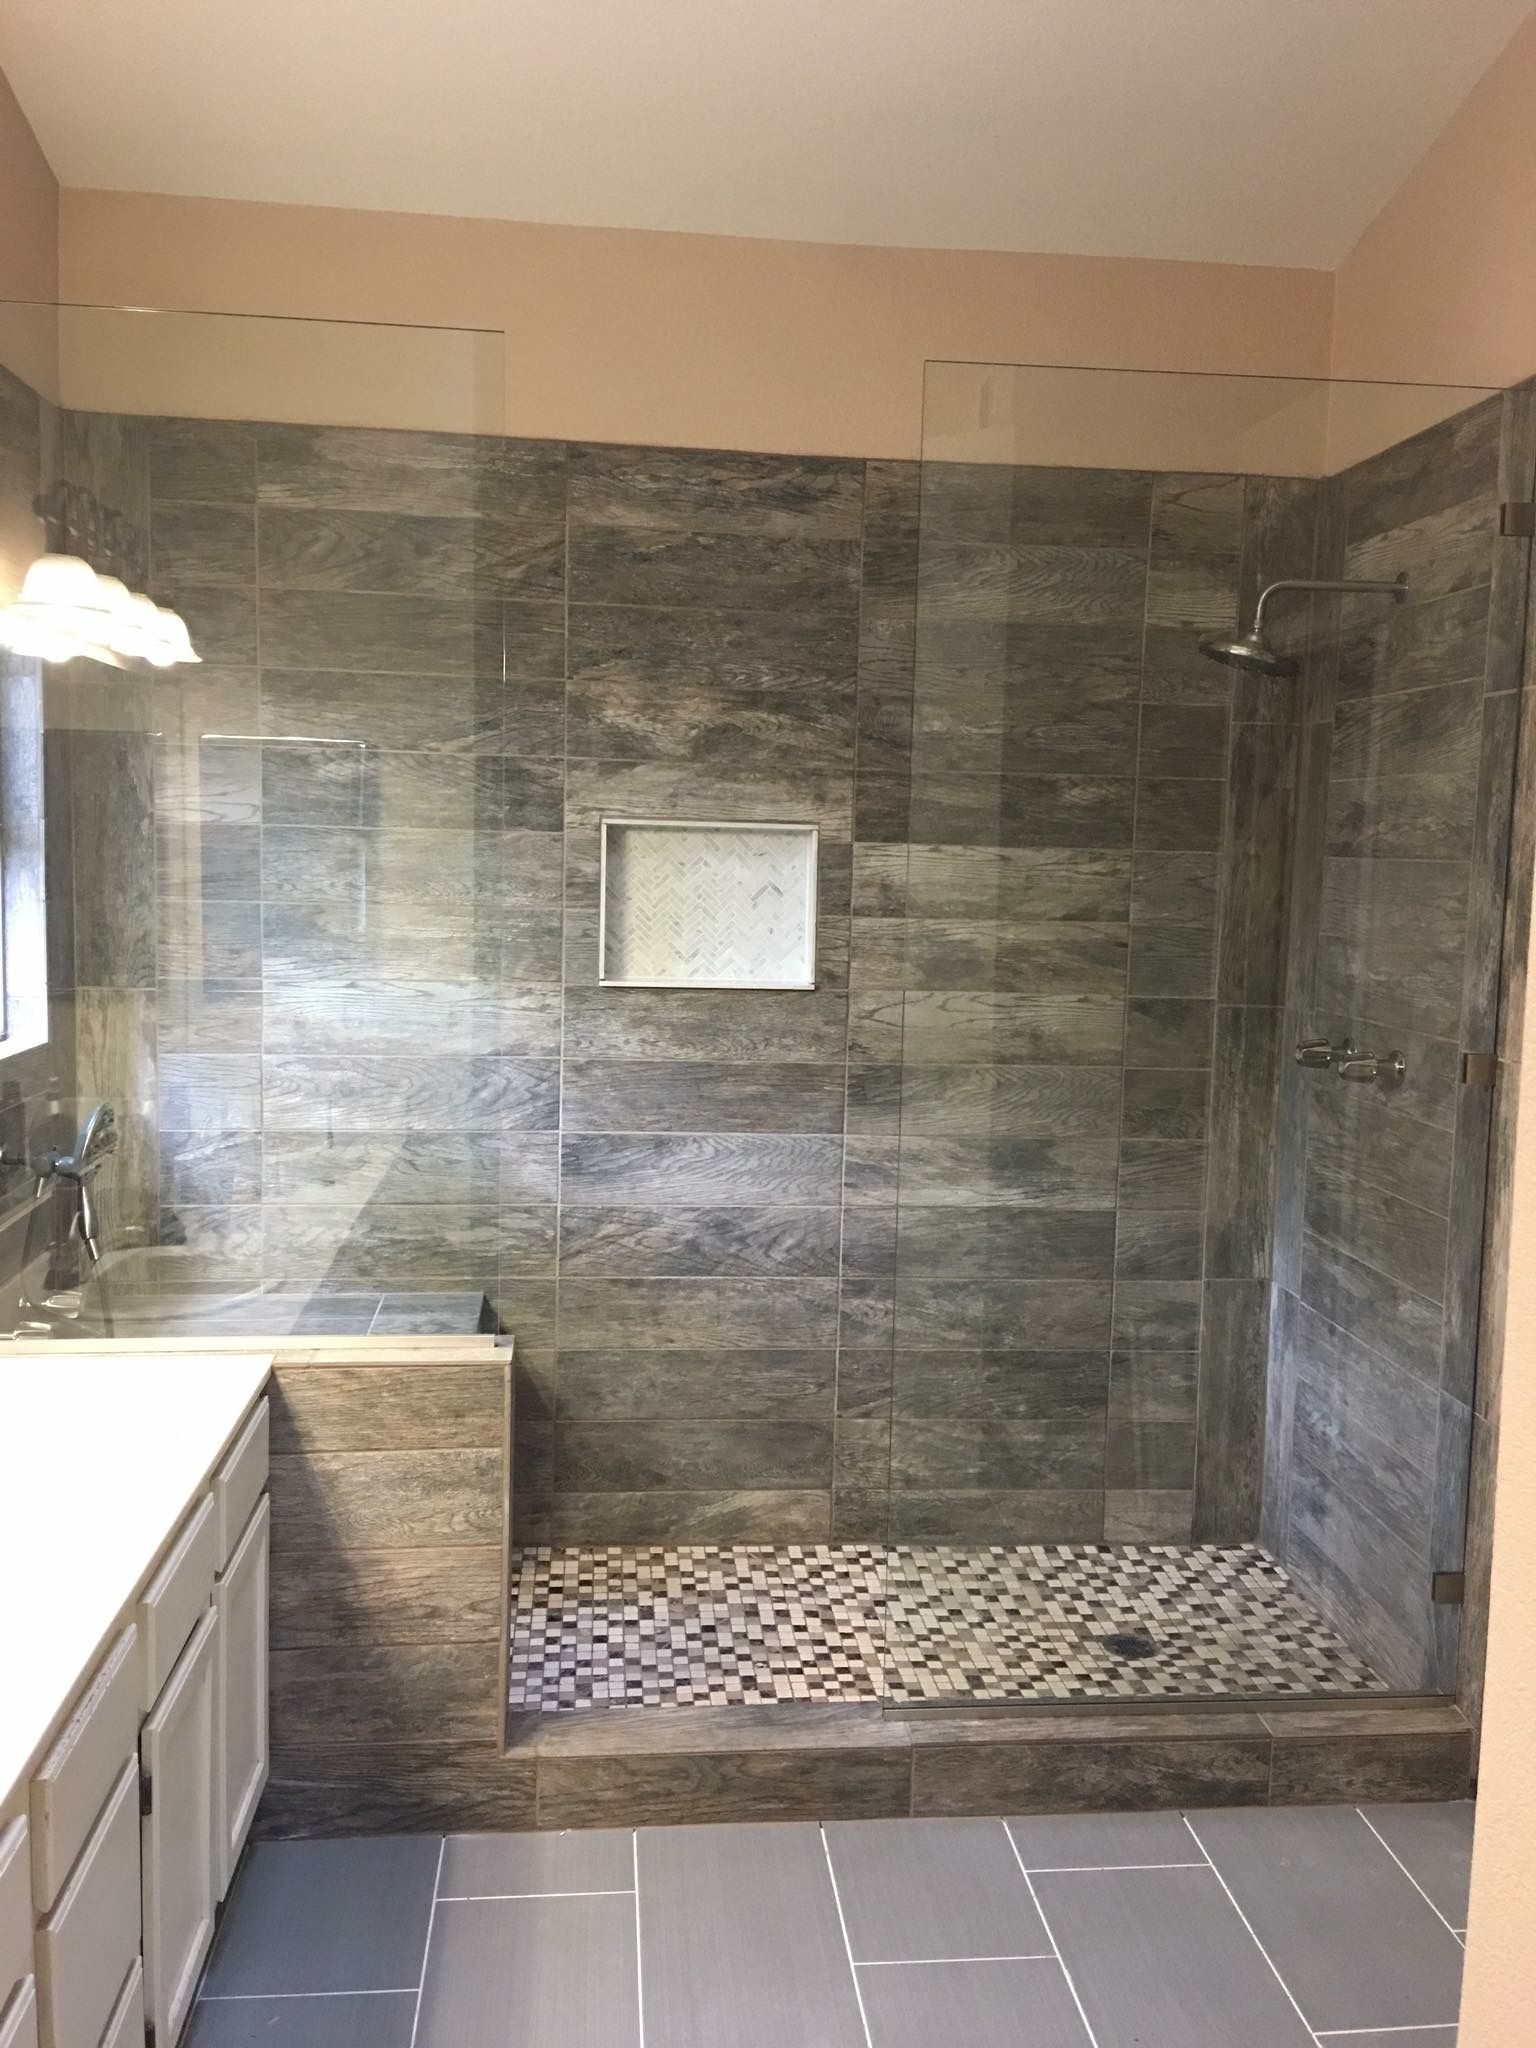 Large Tile Shower With Double Shower Heads And Bench Seat Large Shower Tile Double Shower Heads Bathroom Design